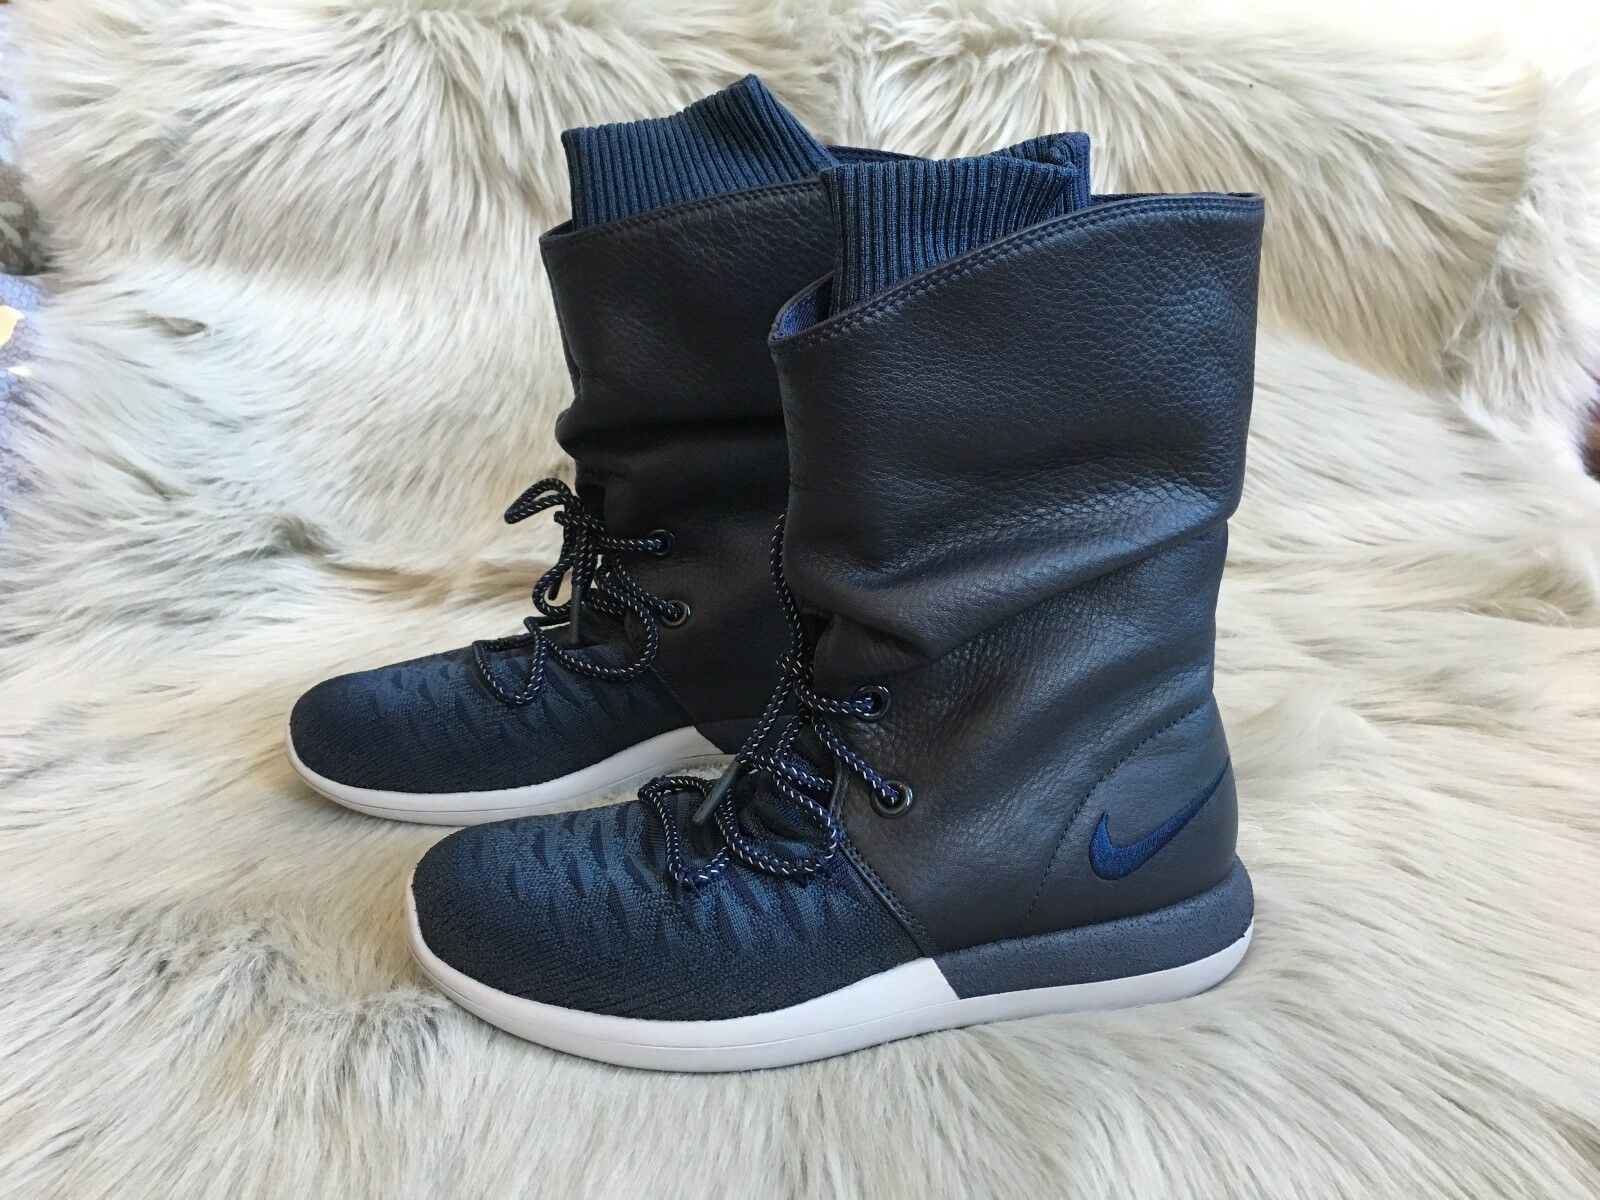 New Nike Roshe Two Hi Flyknit Sneakerboots  Price reduction